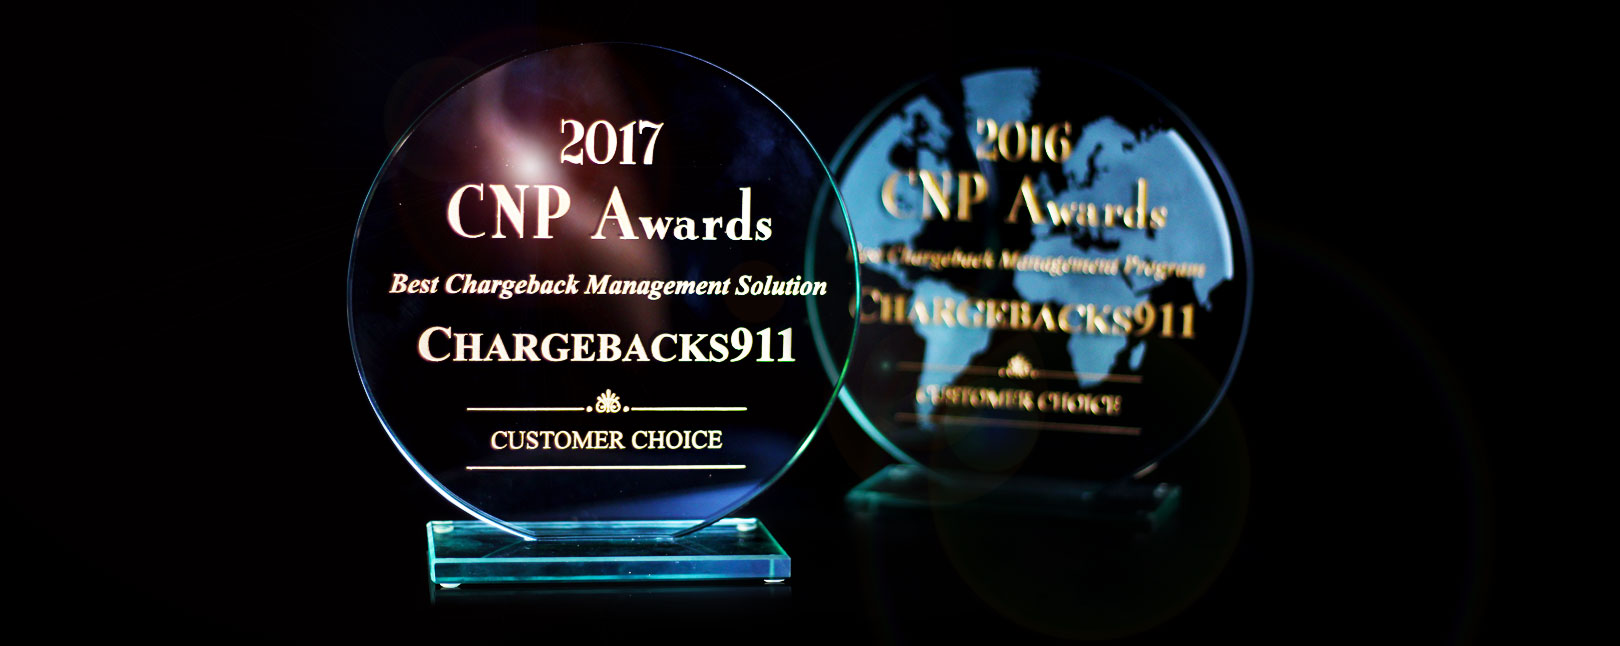 Best Chargeback Management Solution